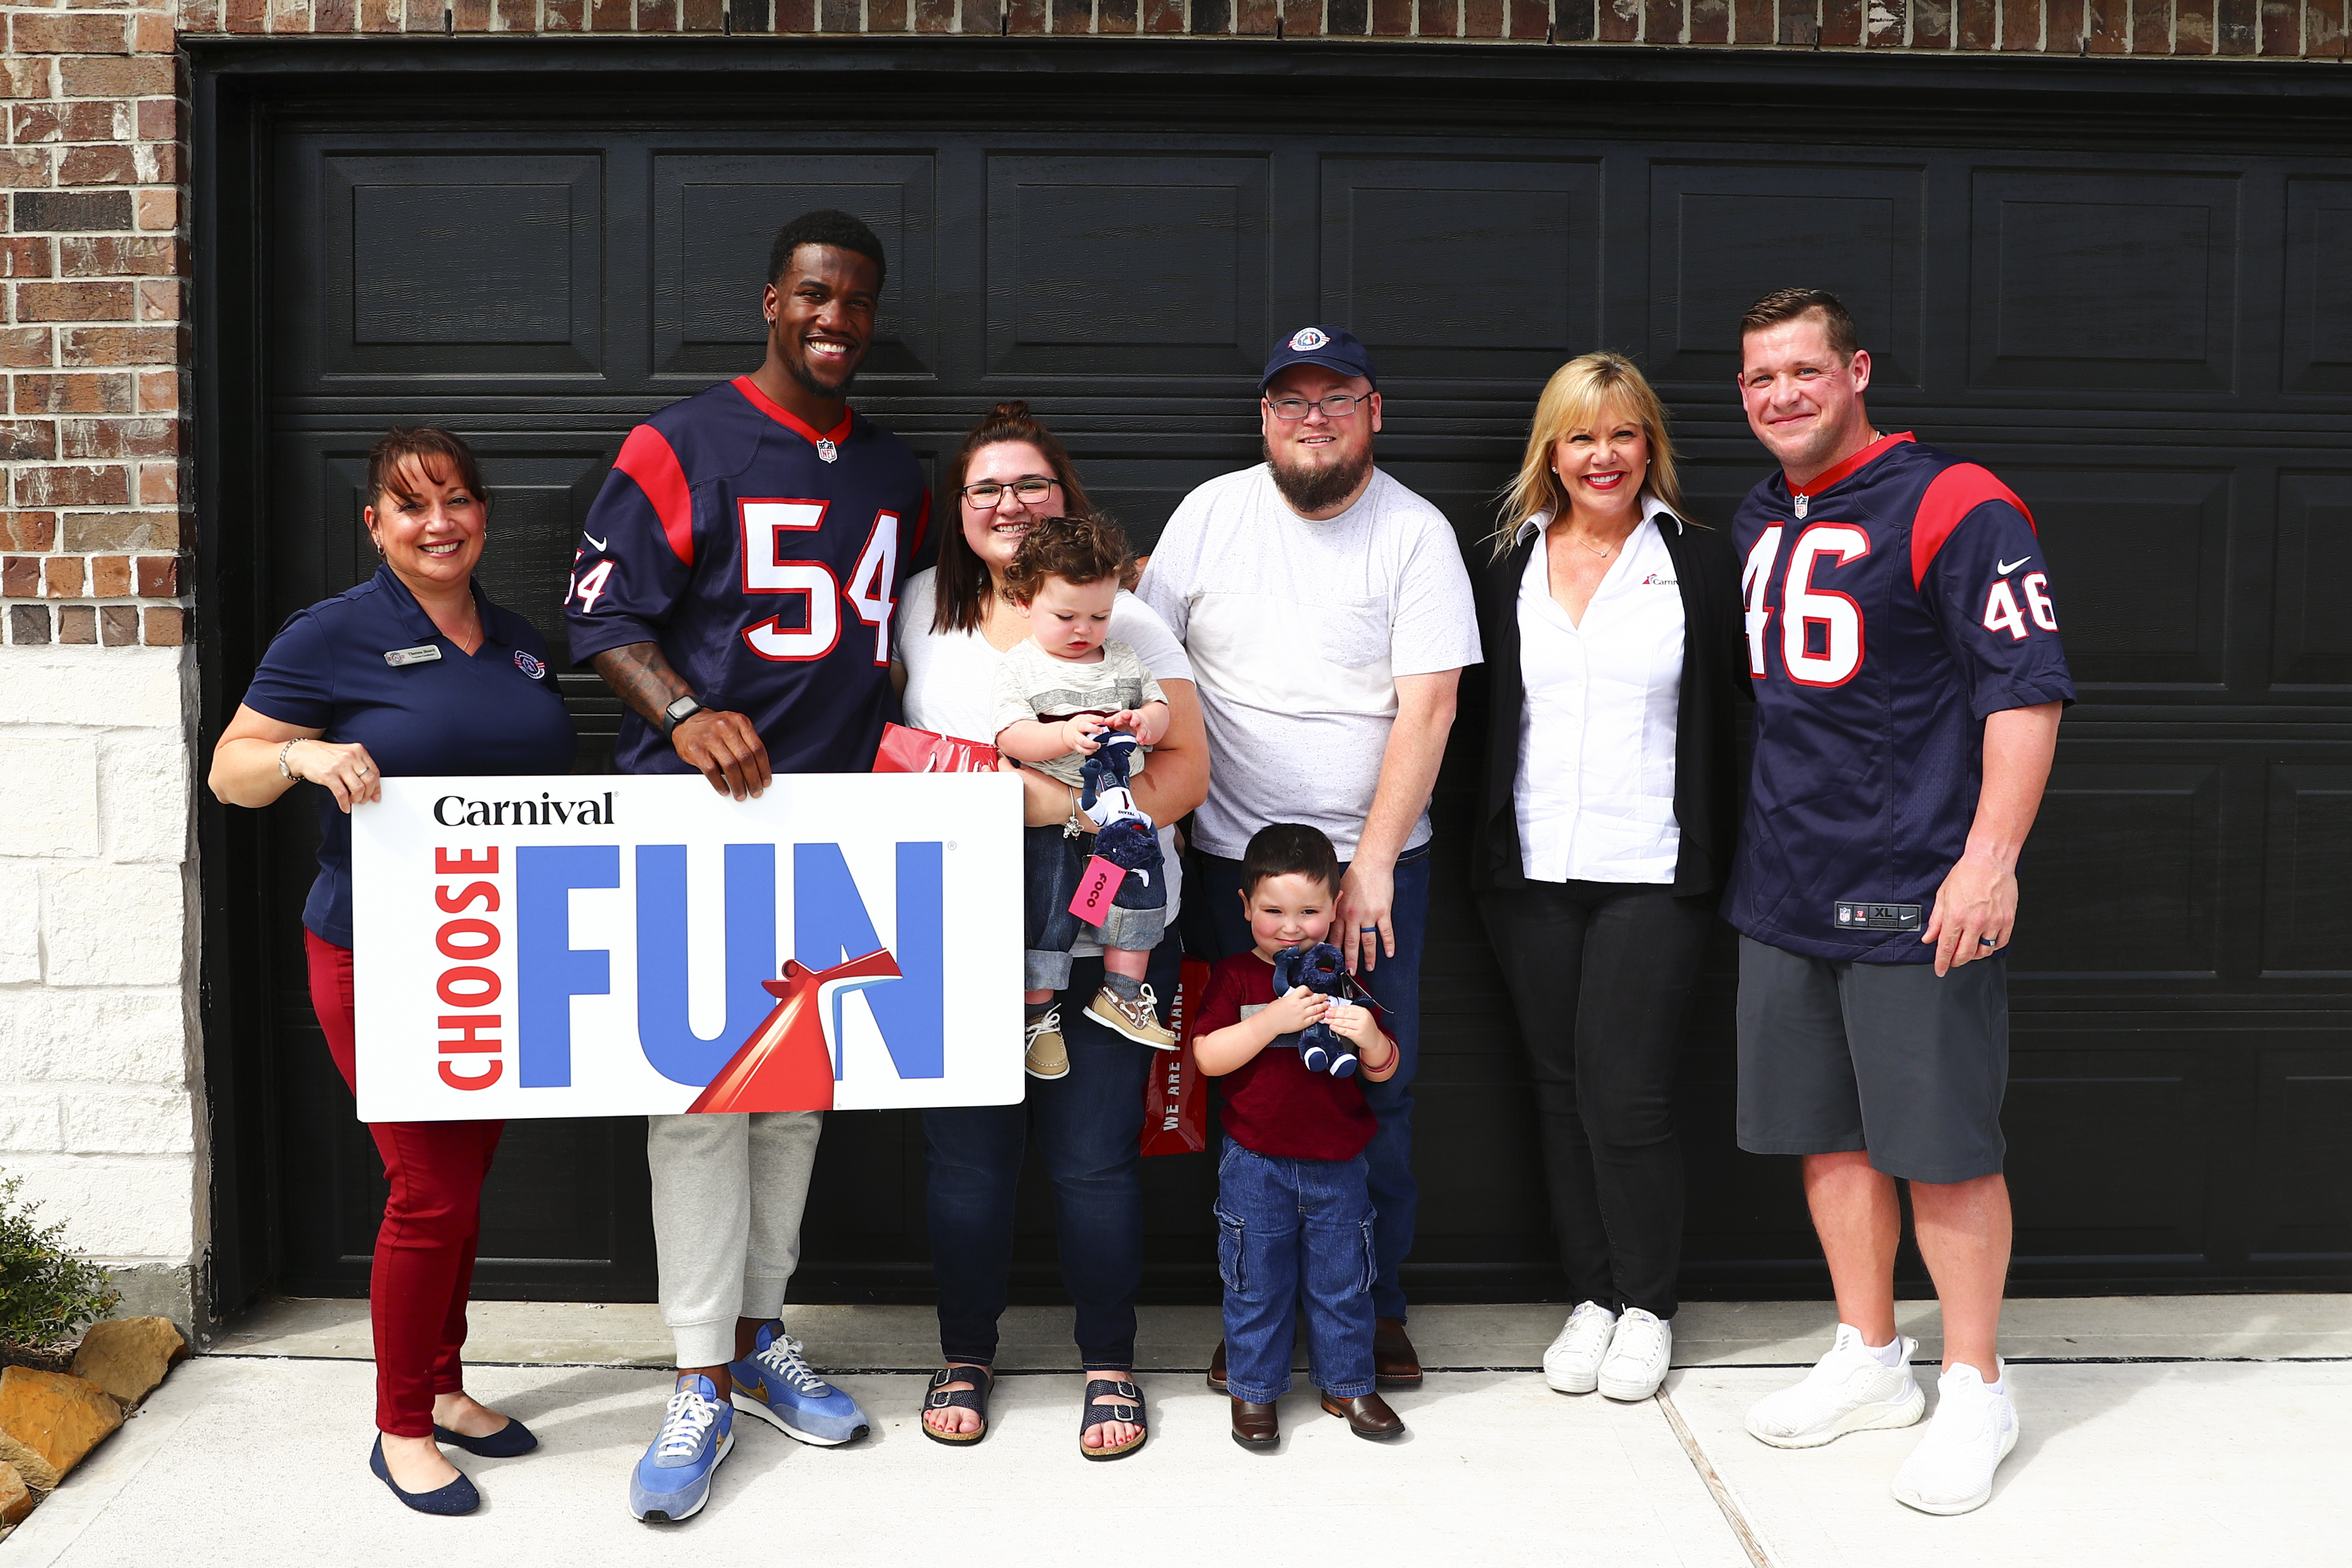 Carnival Cruise Line, Operation Homefront, Houston Texans Team Up to Surprise Military Family with the Gift of Fun – a Free Cruise from Galveston!